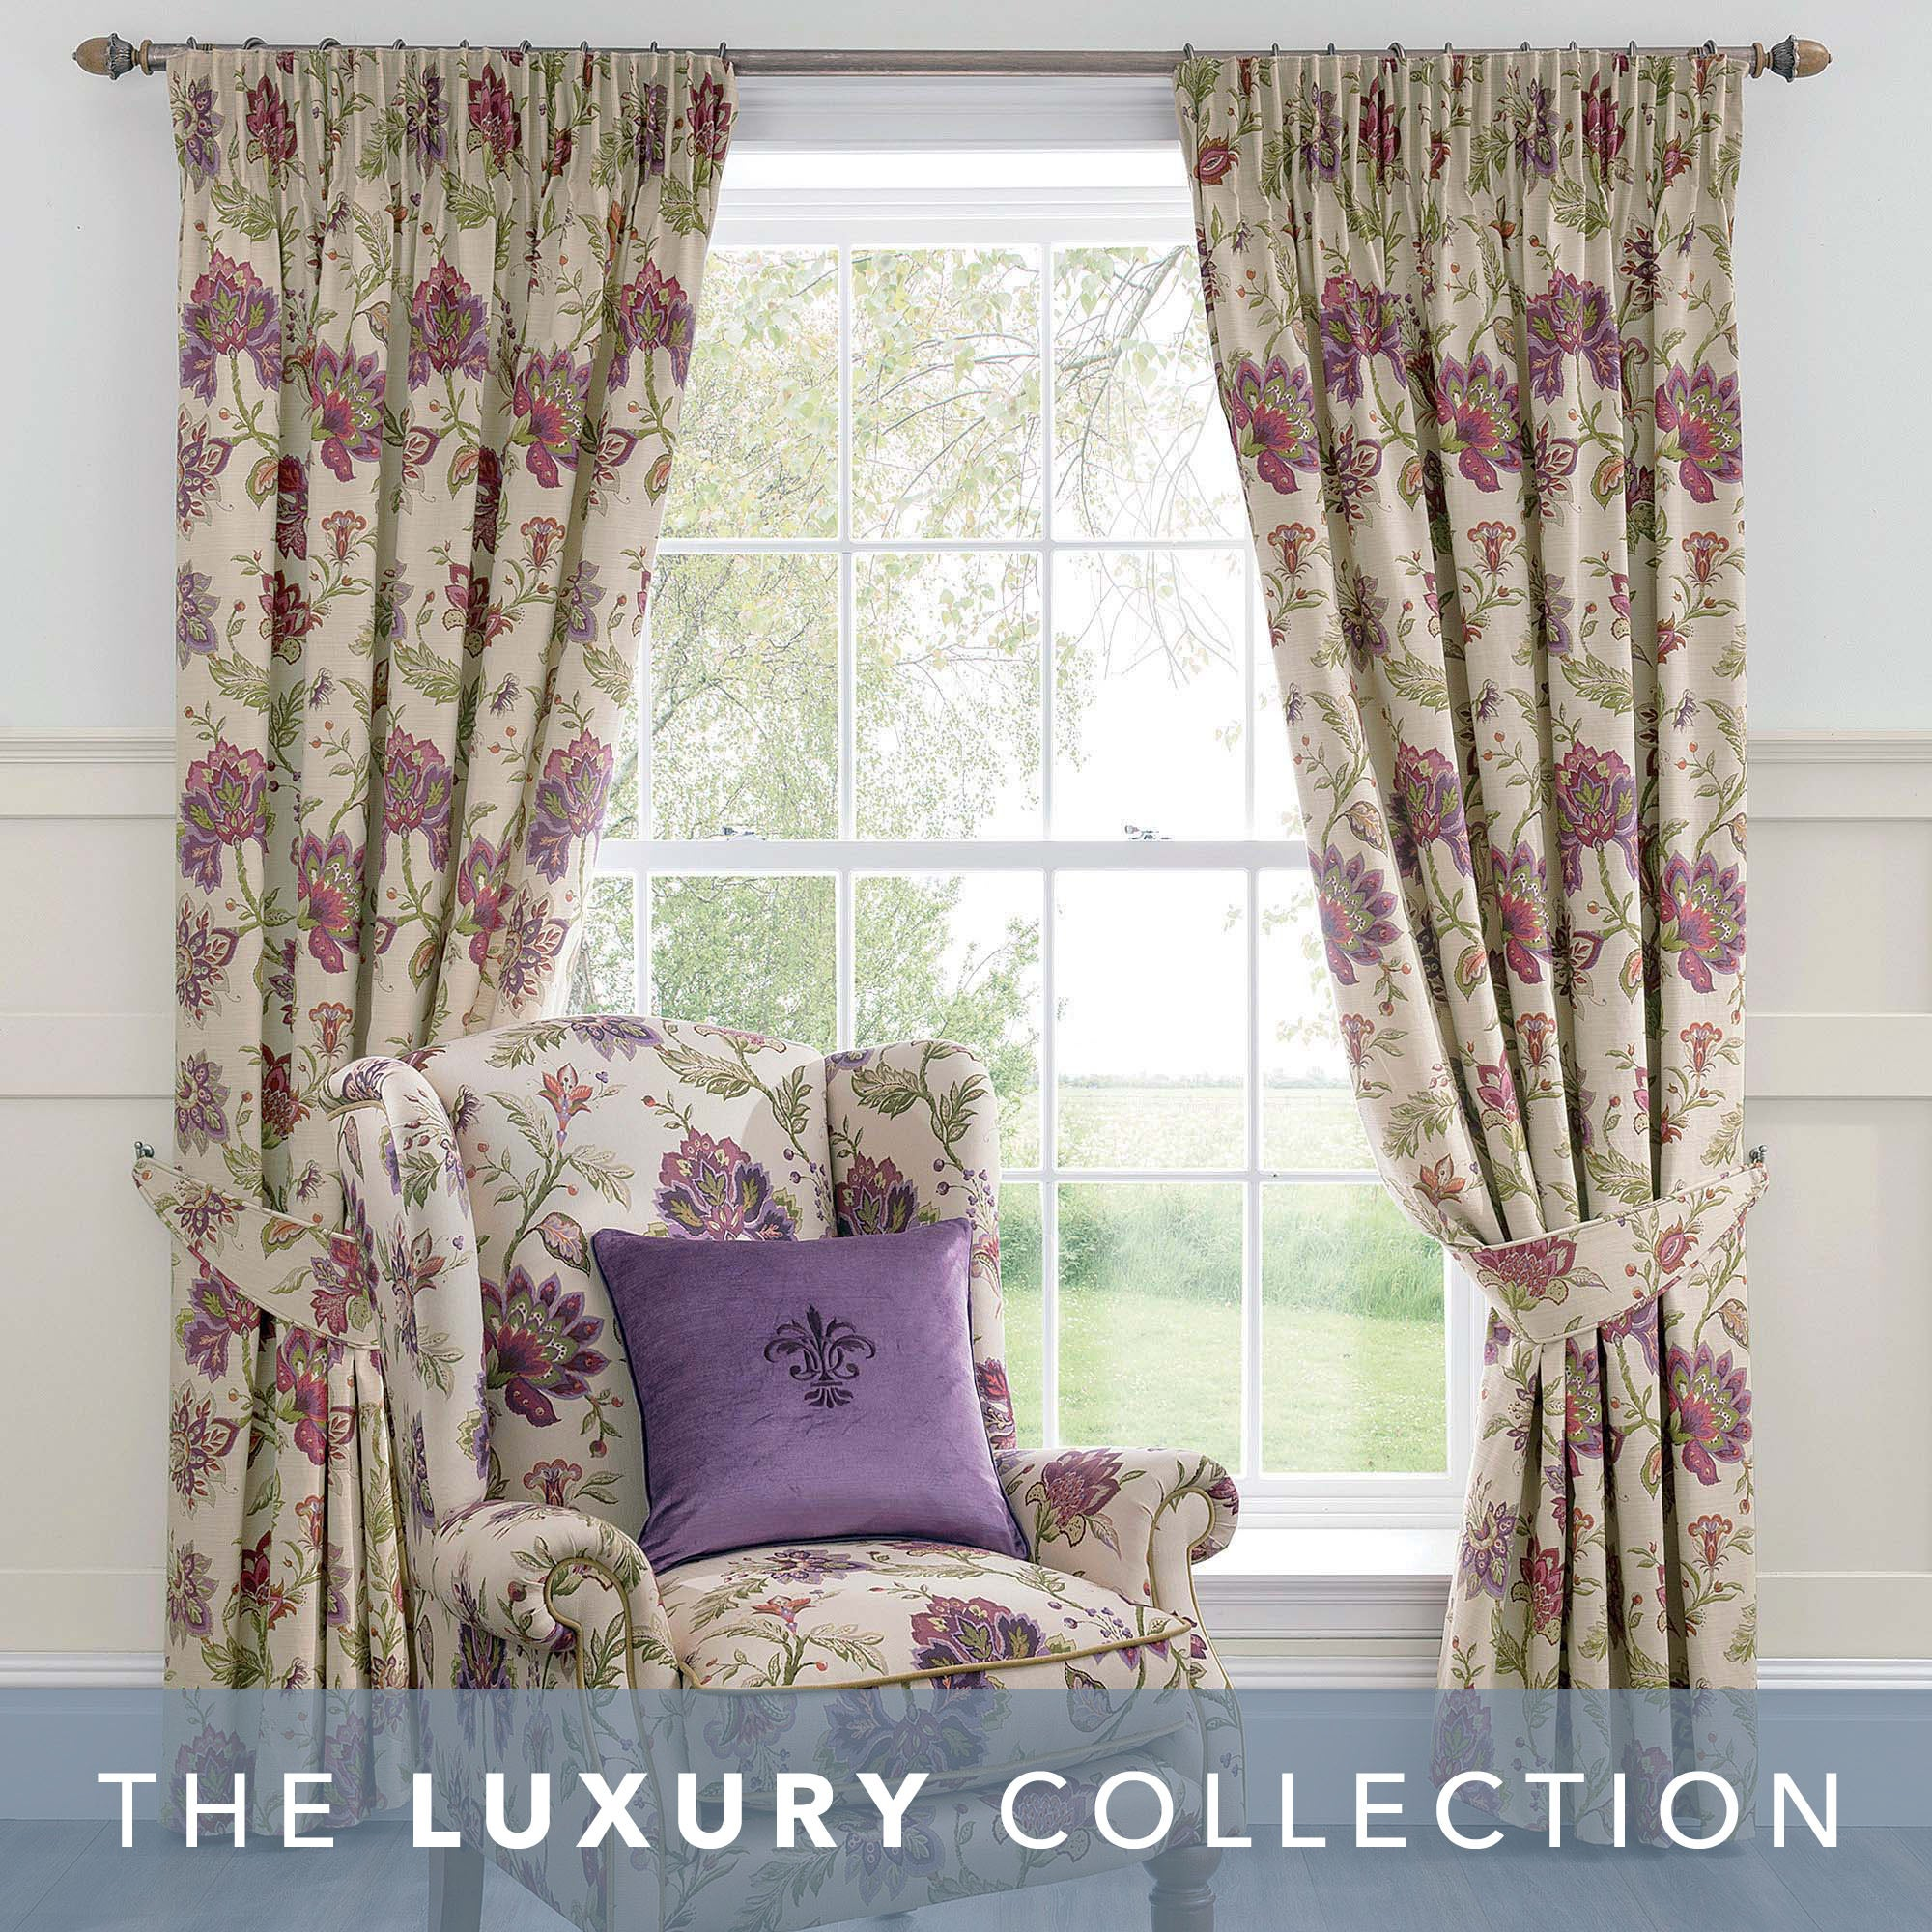 Photo of Dorma bloomsbury plum lined pencil pleat curtains cream / purple